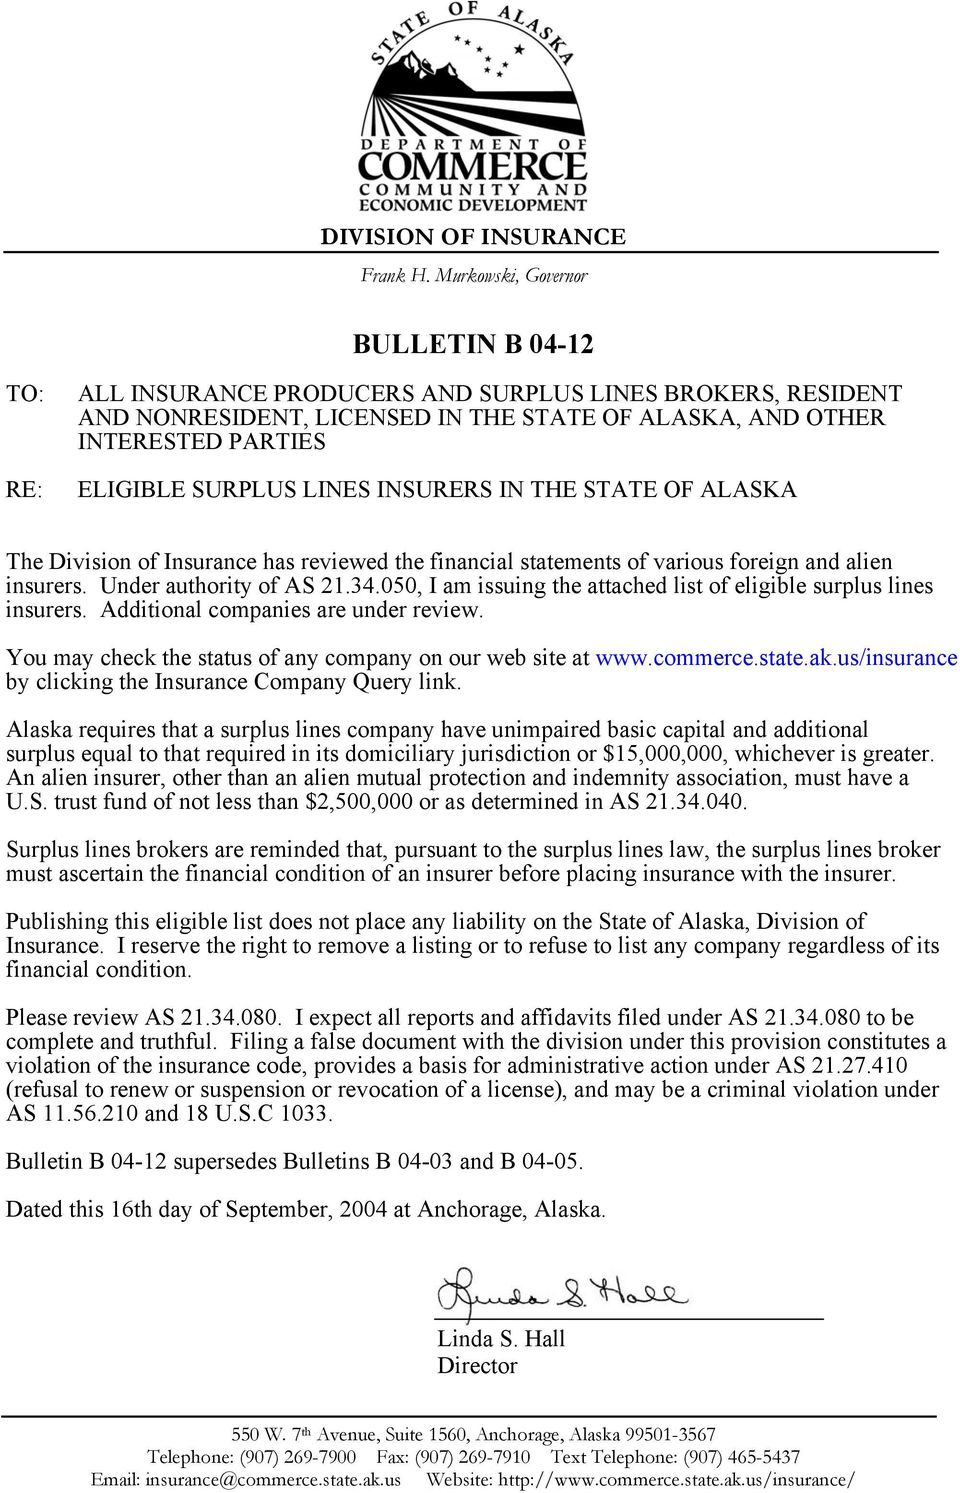 SURPLUS LINES INSURERS IN THE STATE OF ALASKA The Division of Insurance has reviewed the financial statements of various foreign and alien insurers. Under authority of AS 21.34.